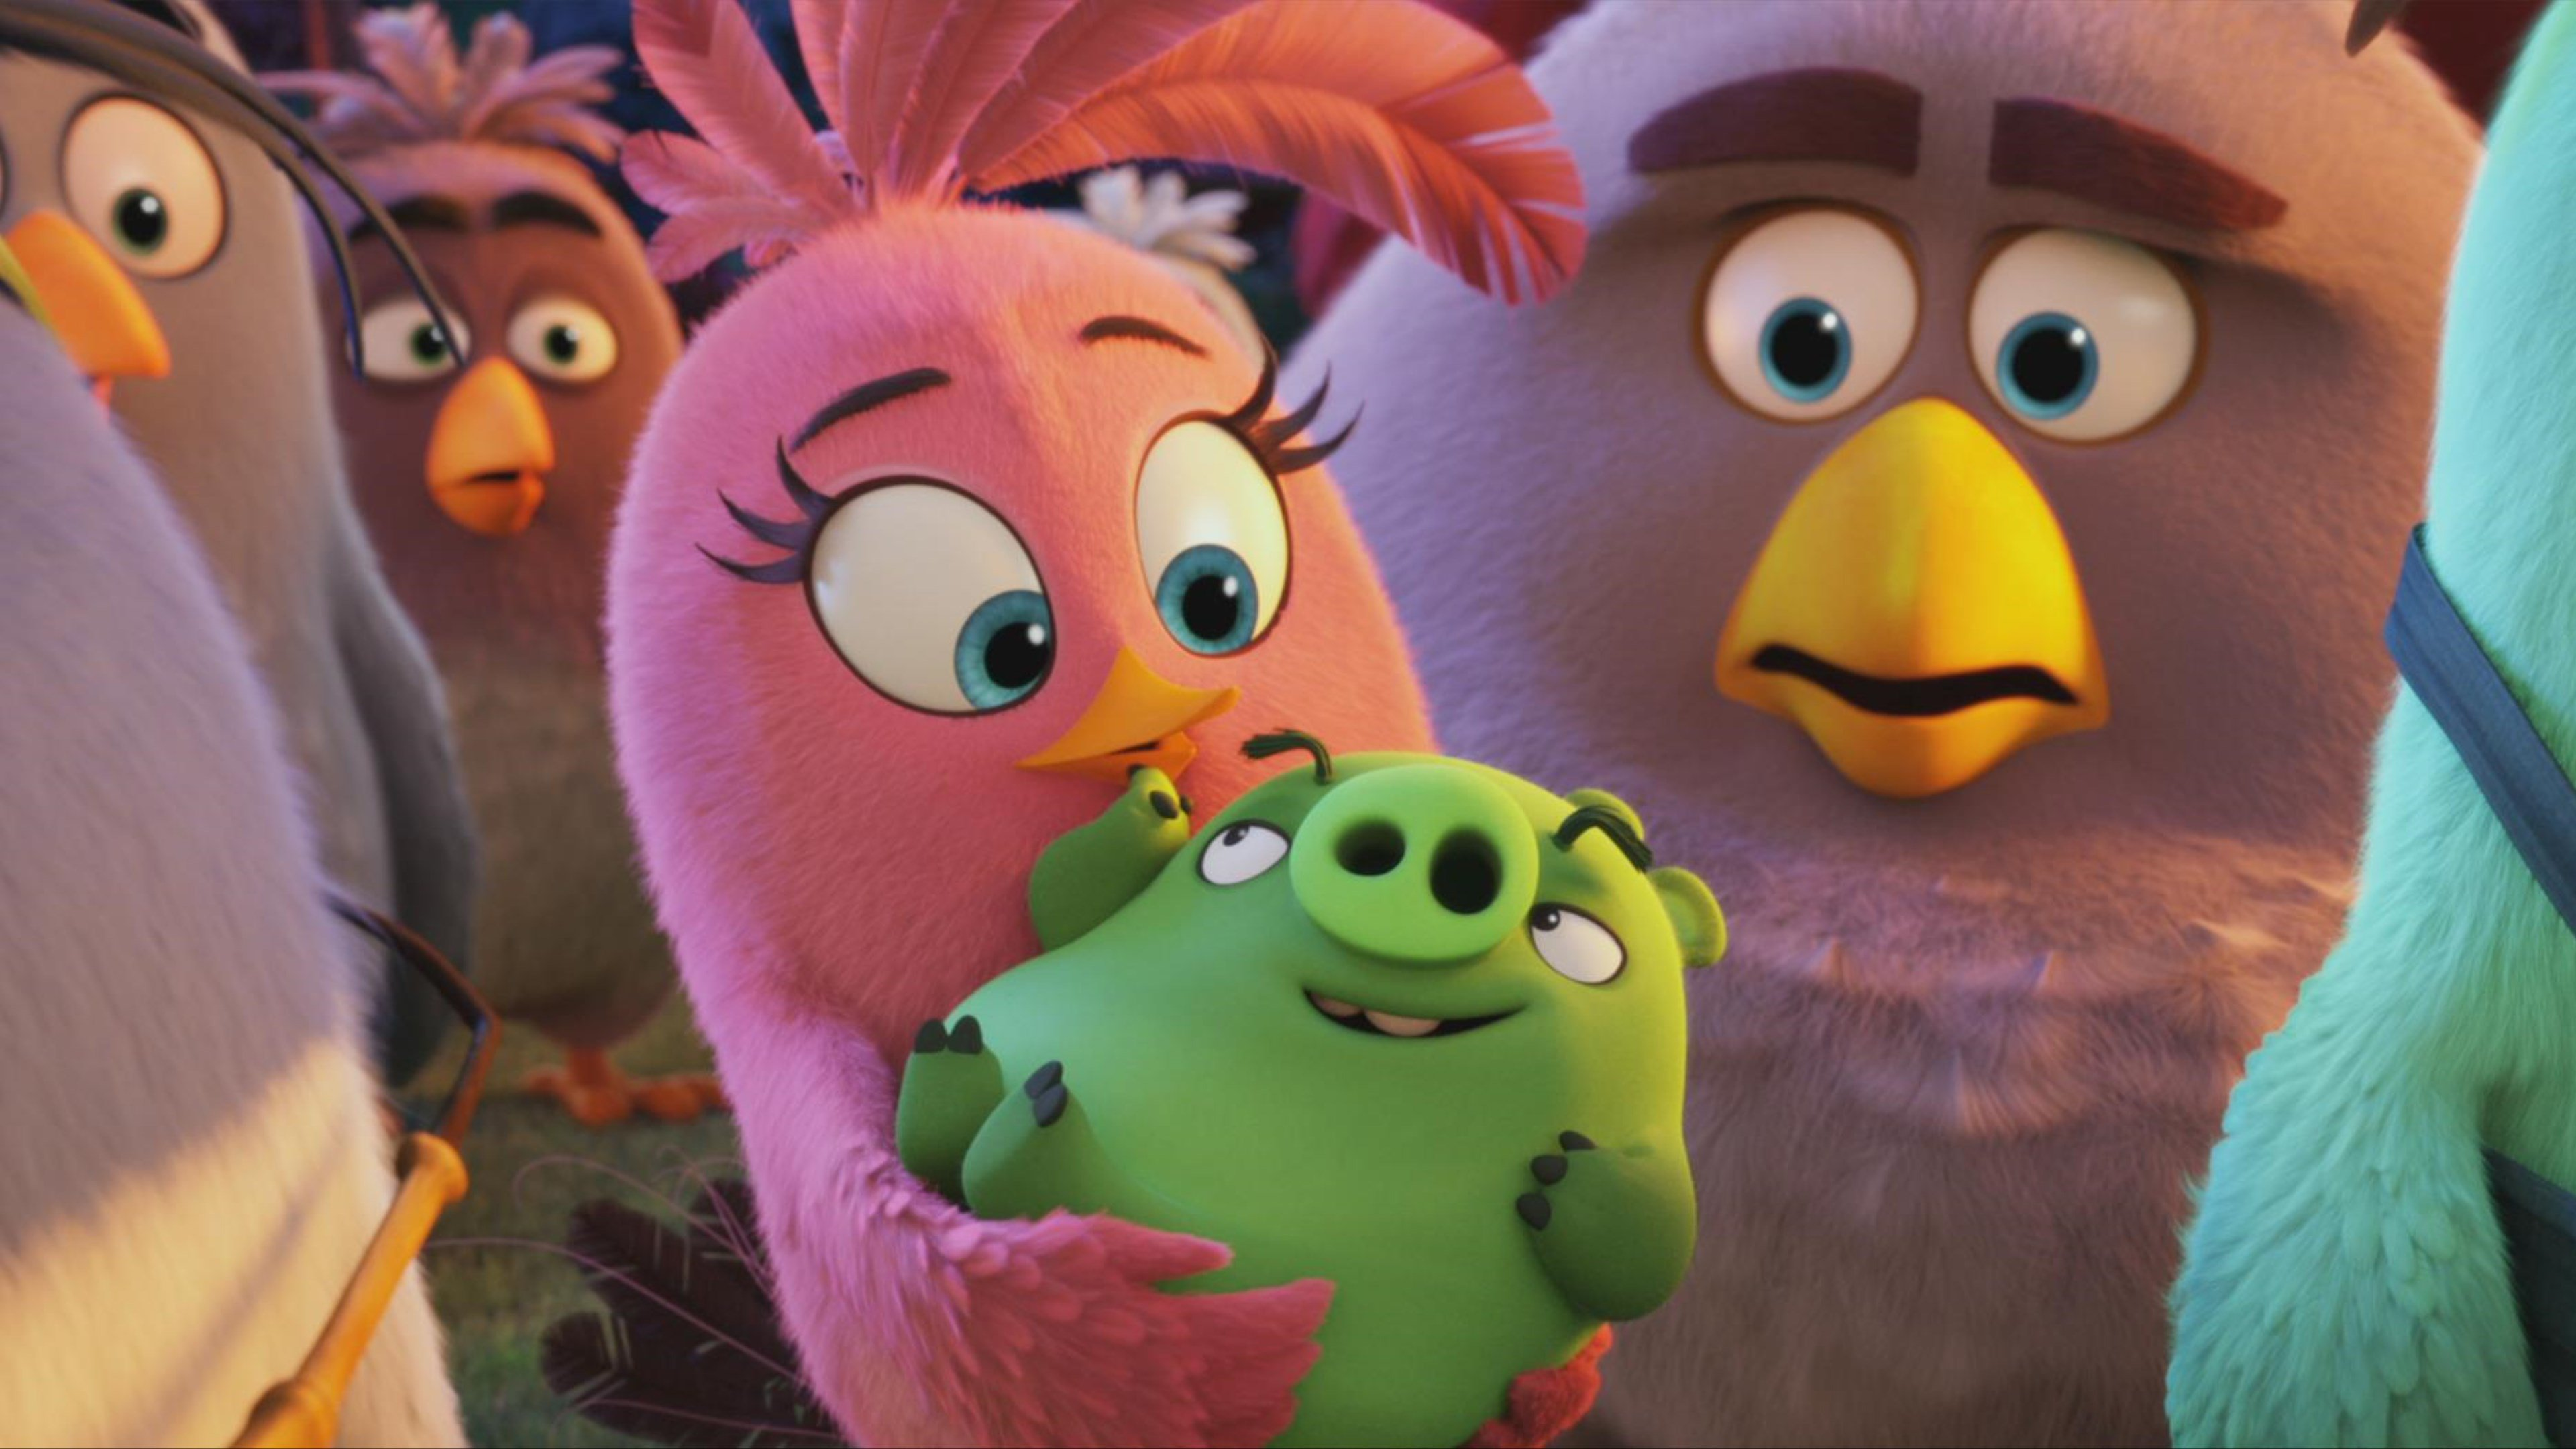 Angry Birds Theme Song | Movie Theme Songs & TV Soundtracks